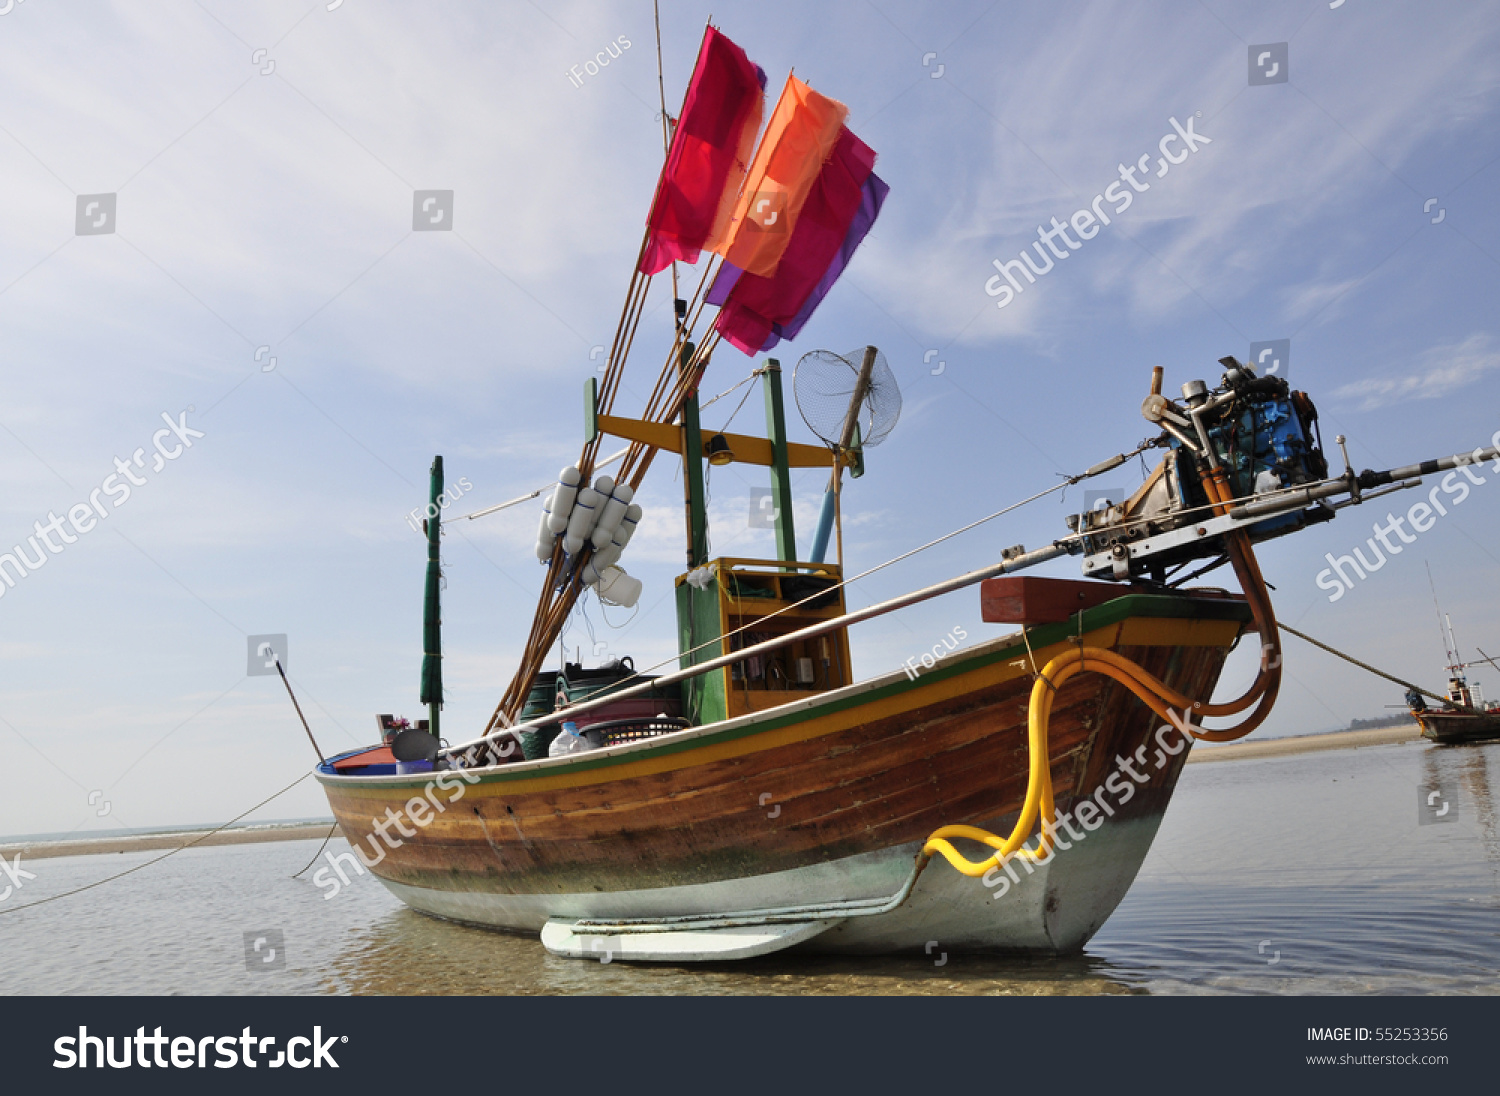 Small traditional fishing boat with colorful flags shot on a sunny day in Hua Hin, Thailand